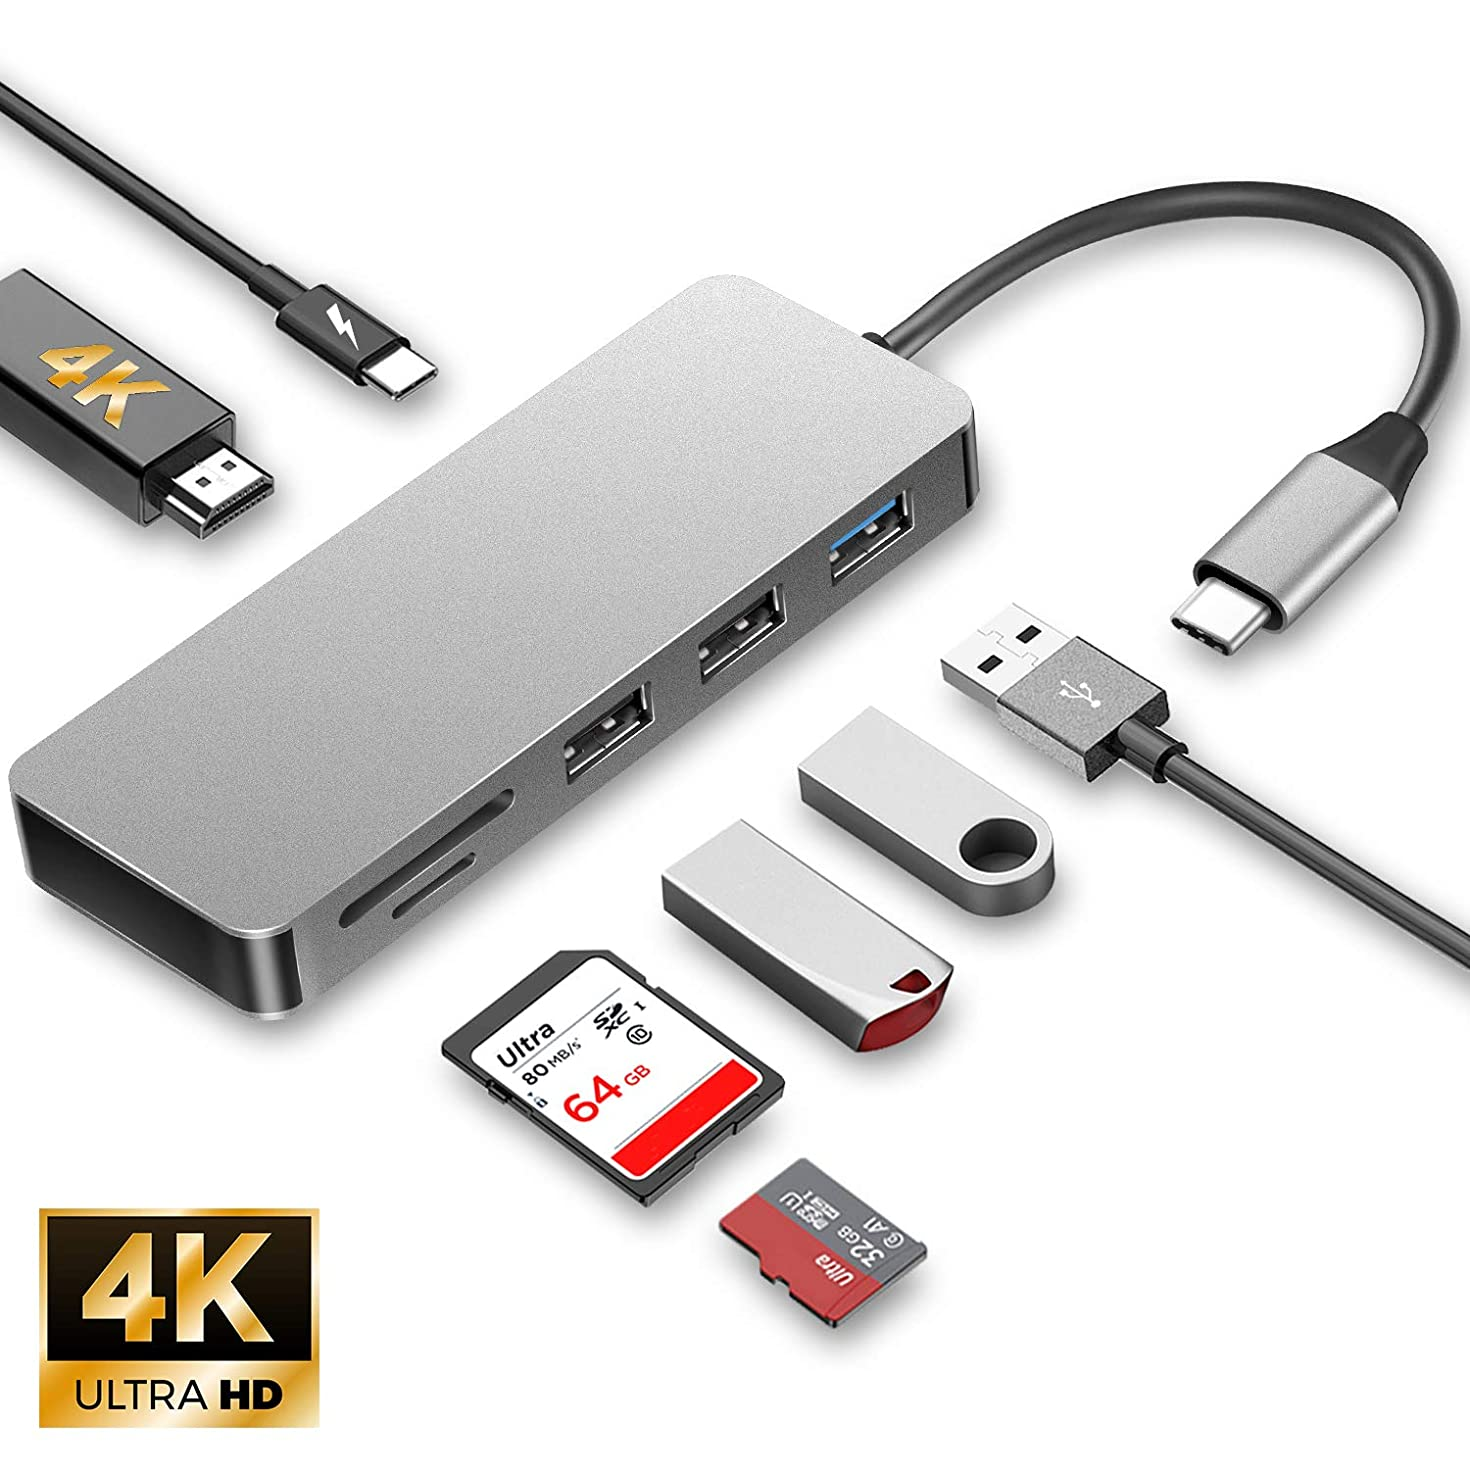 USB C Hub,7-in-1 Type C Adapter with 4K USB C to HDMI,USB C Charging Port,1 USB 3.0 Port,2 USB 2.0 Ports,SD/TF Card Reader,Compatible for MacBook Pro 2016/2017/2018,MacBook air 2018,XPS and More